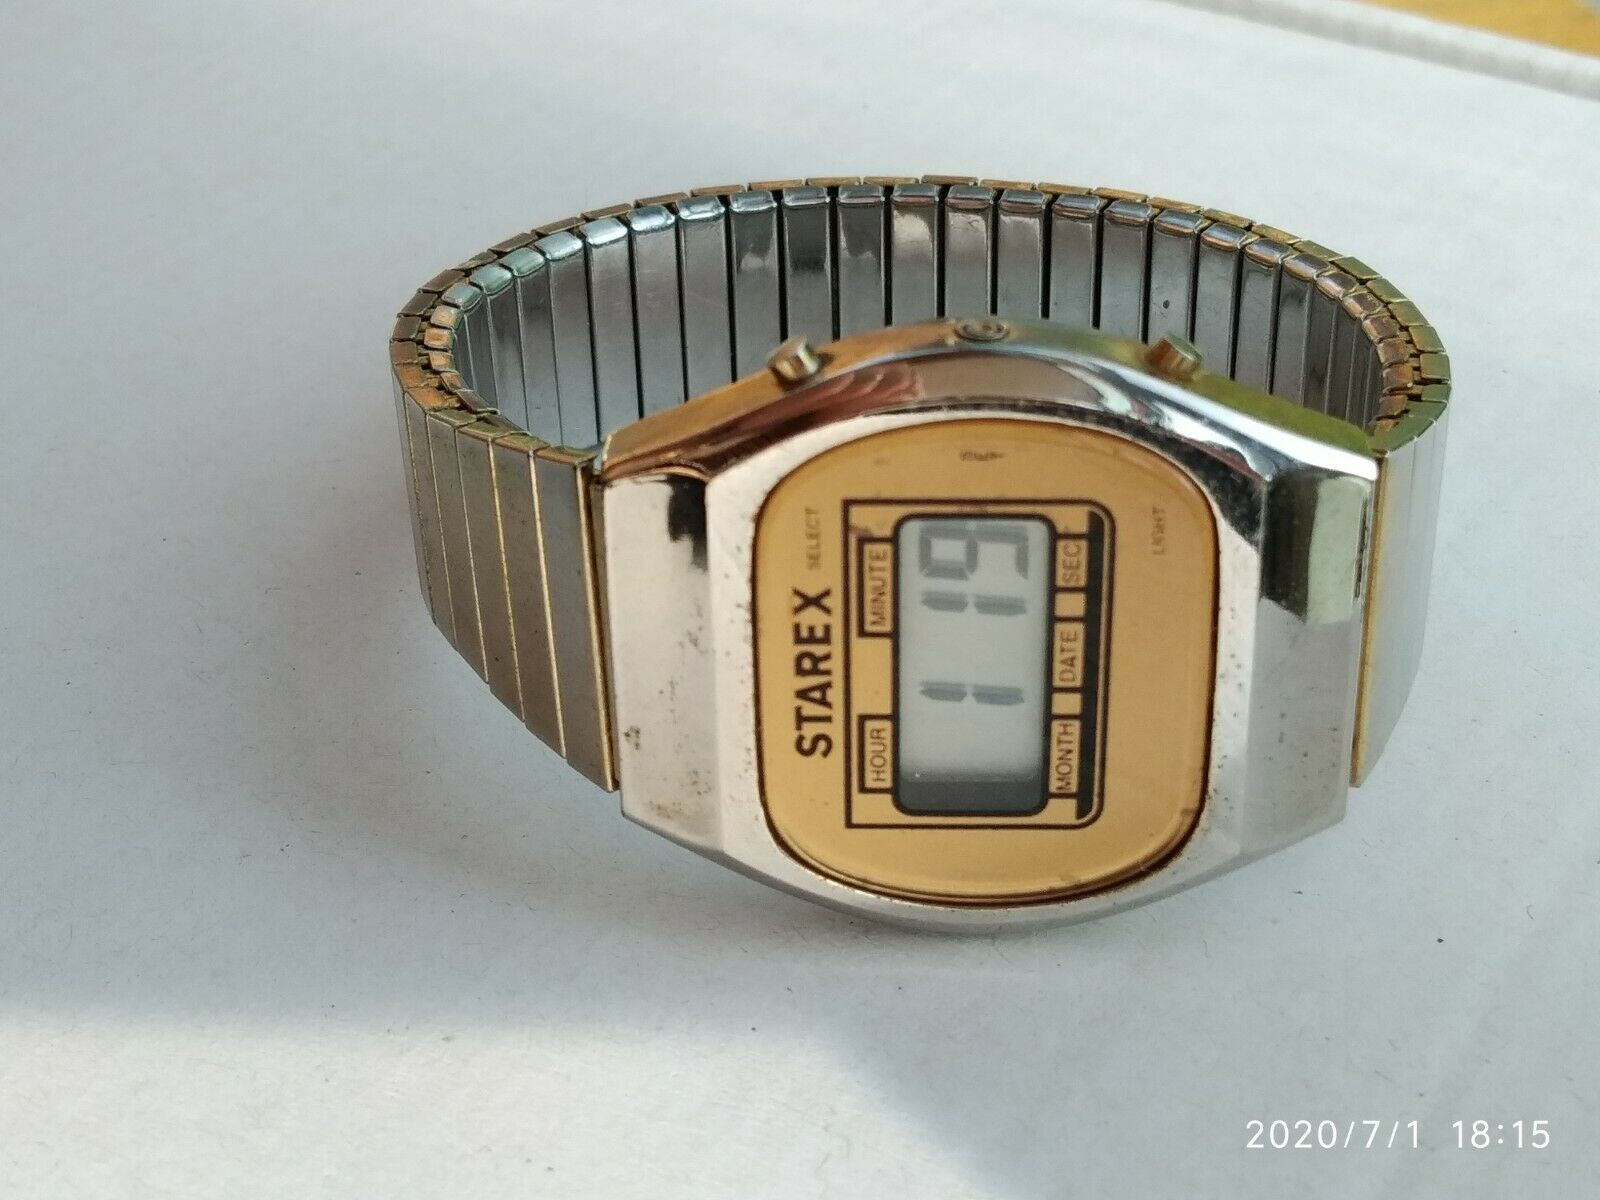 Primary image for Starex men's quartz digital vintage watch gold tone